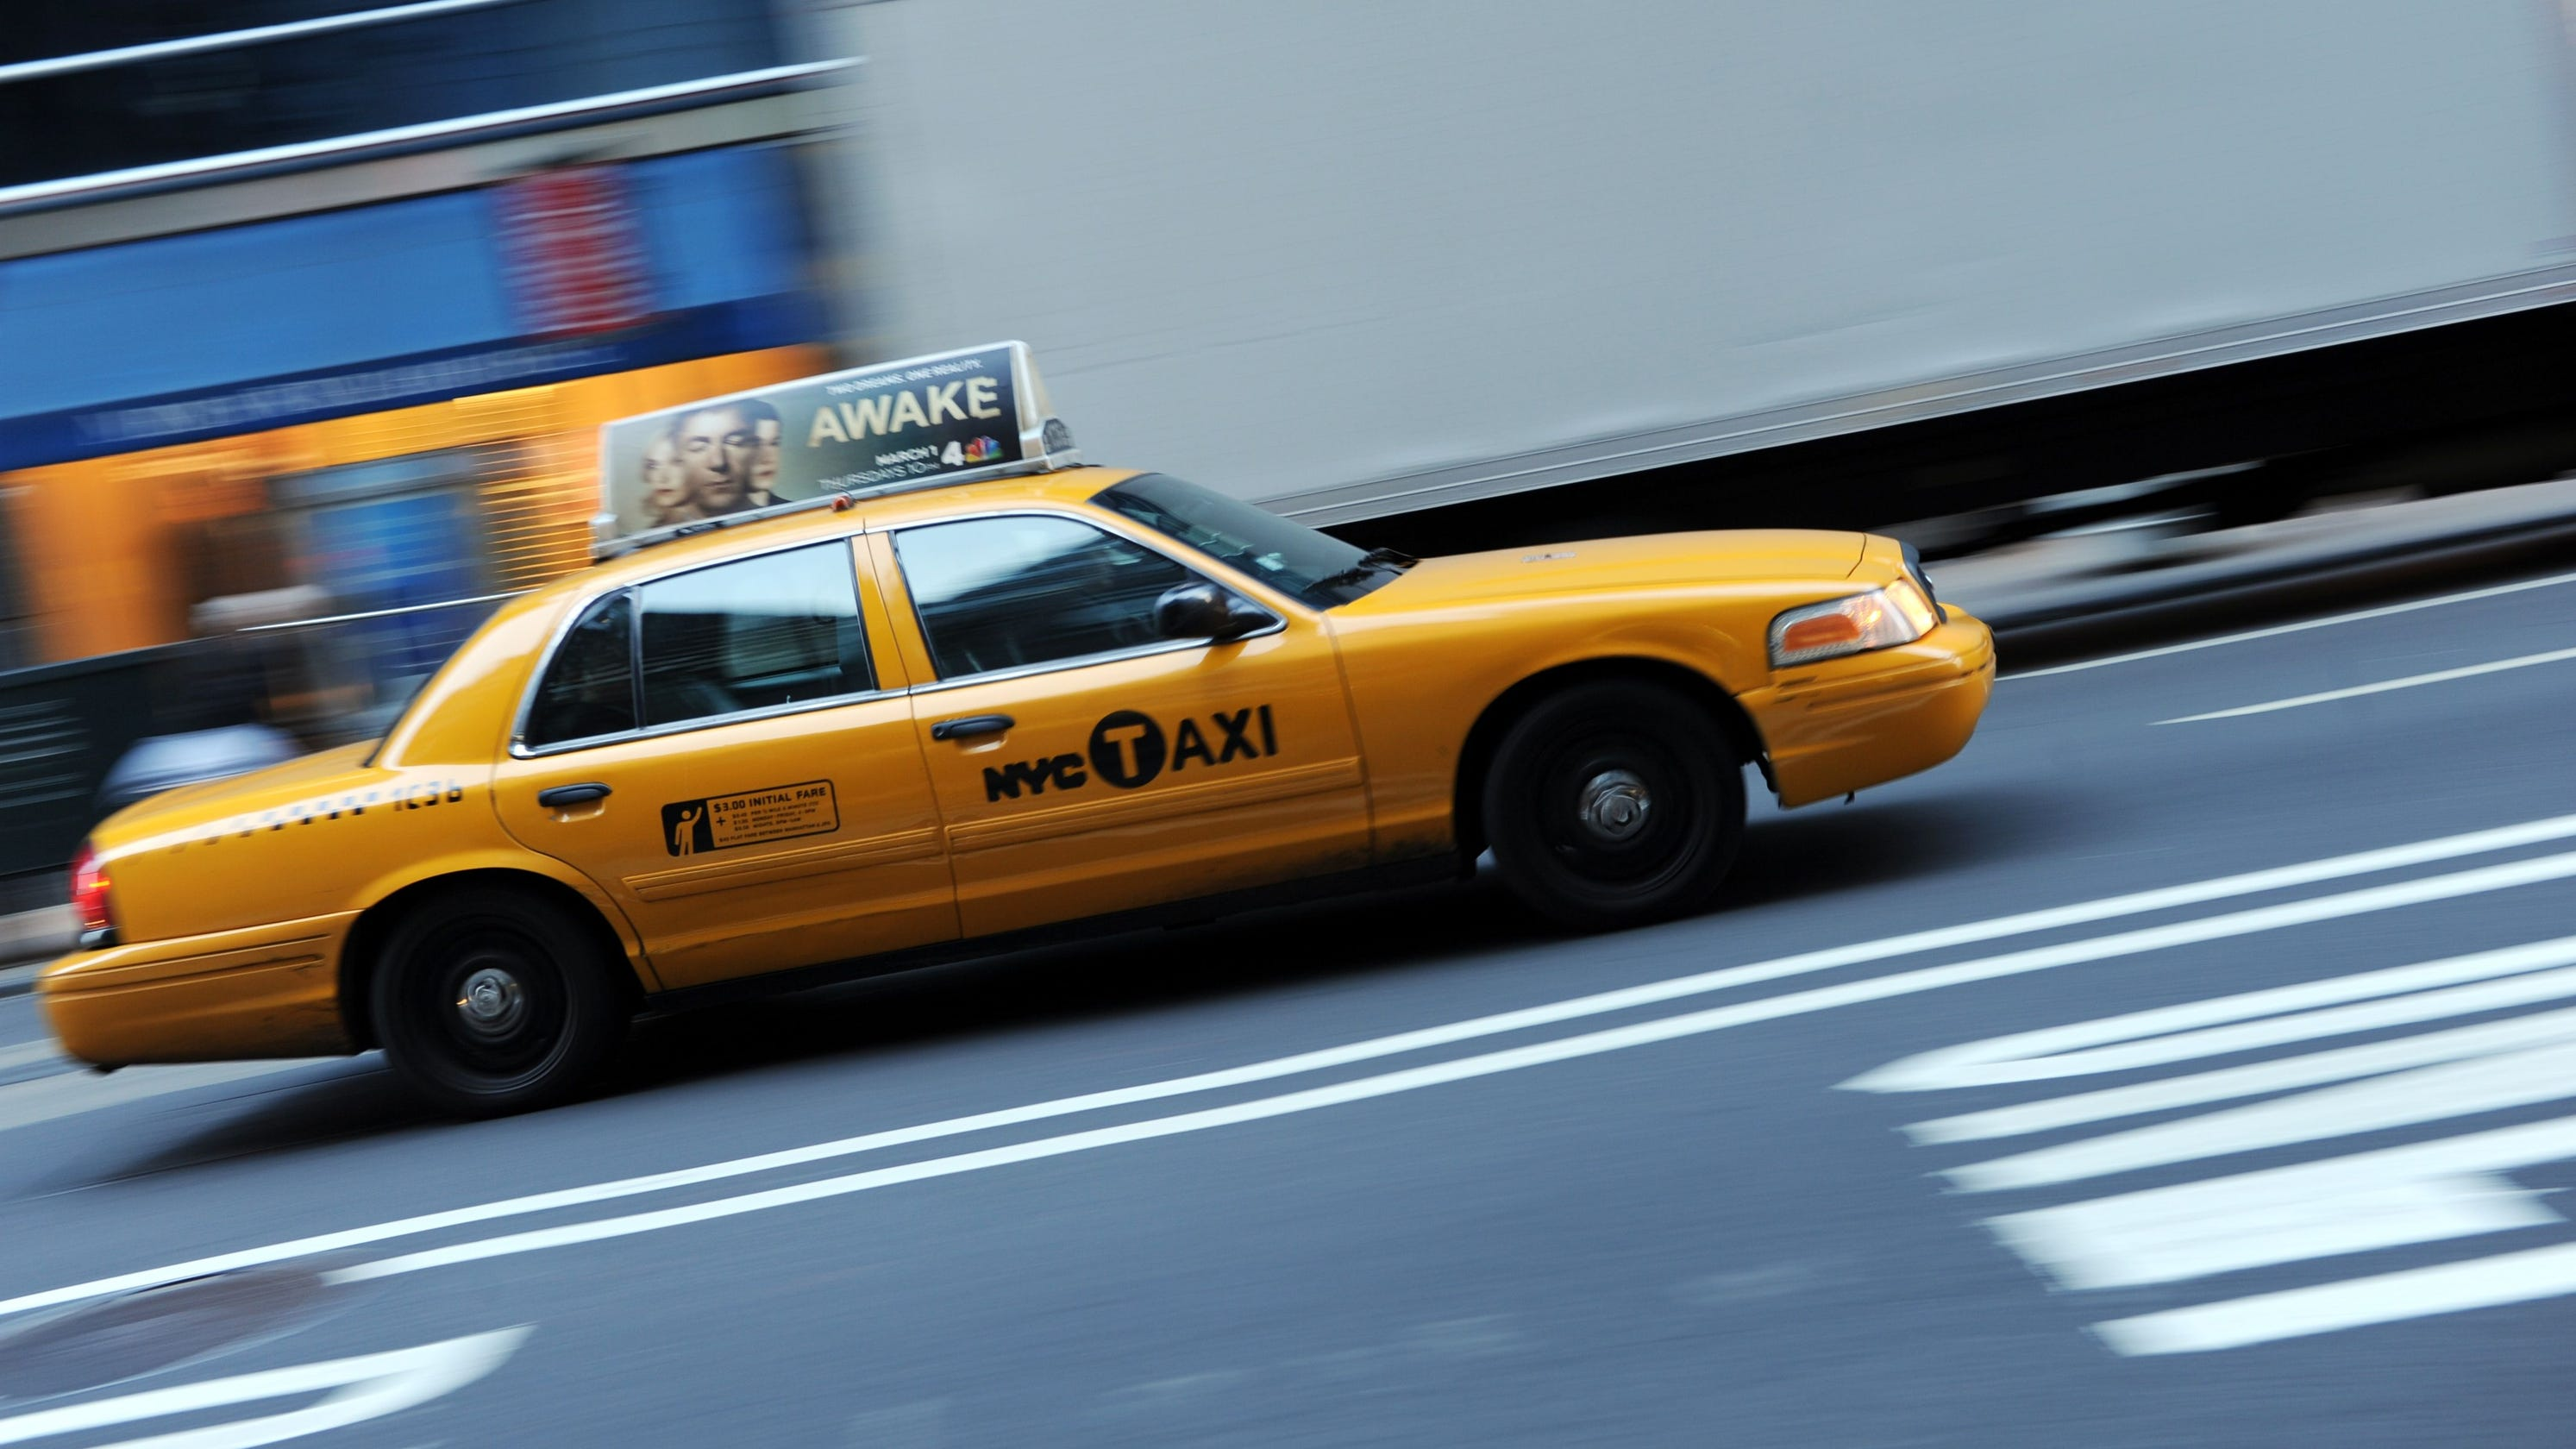 Taxi New York >> New Yorker Born In The Back Seat Of A Yellow Cab Nypd Said